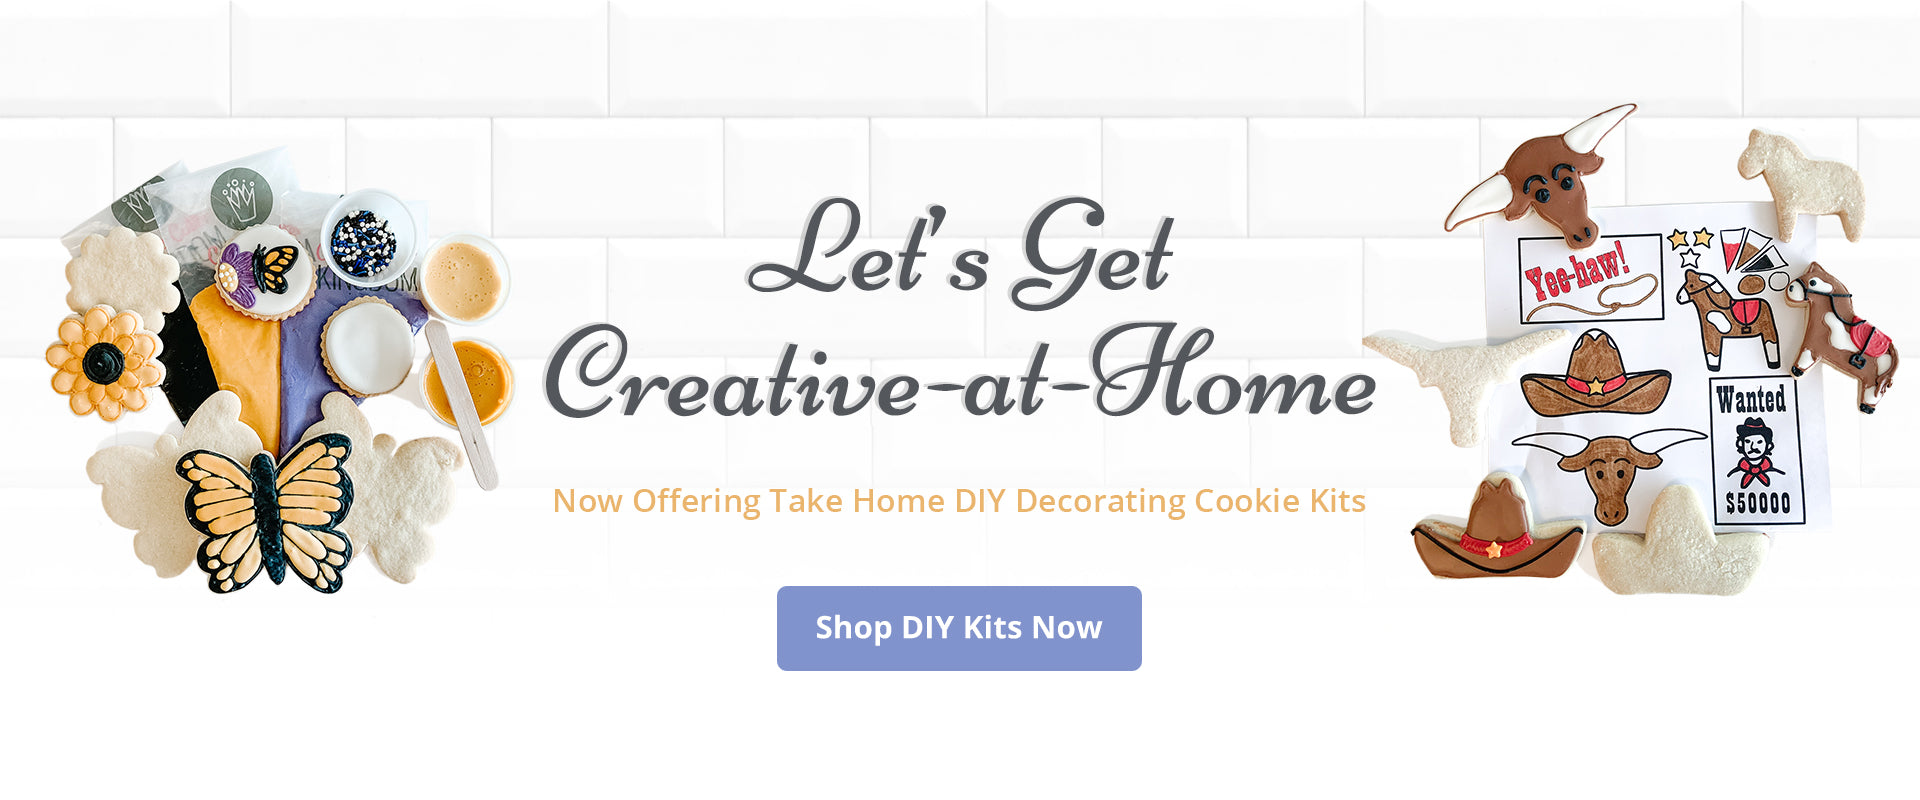 Let's get creative-at-home. Now offering take home DIY cookie decorating kits. Shop Now.